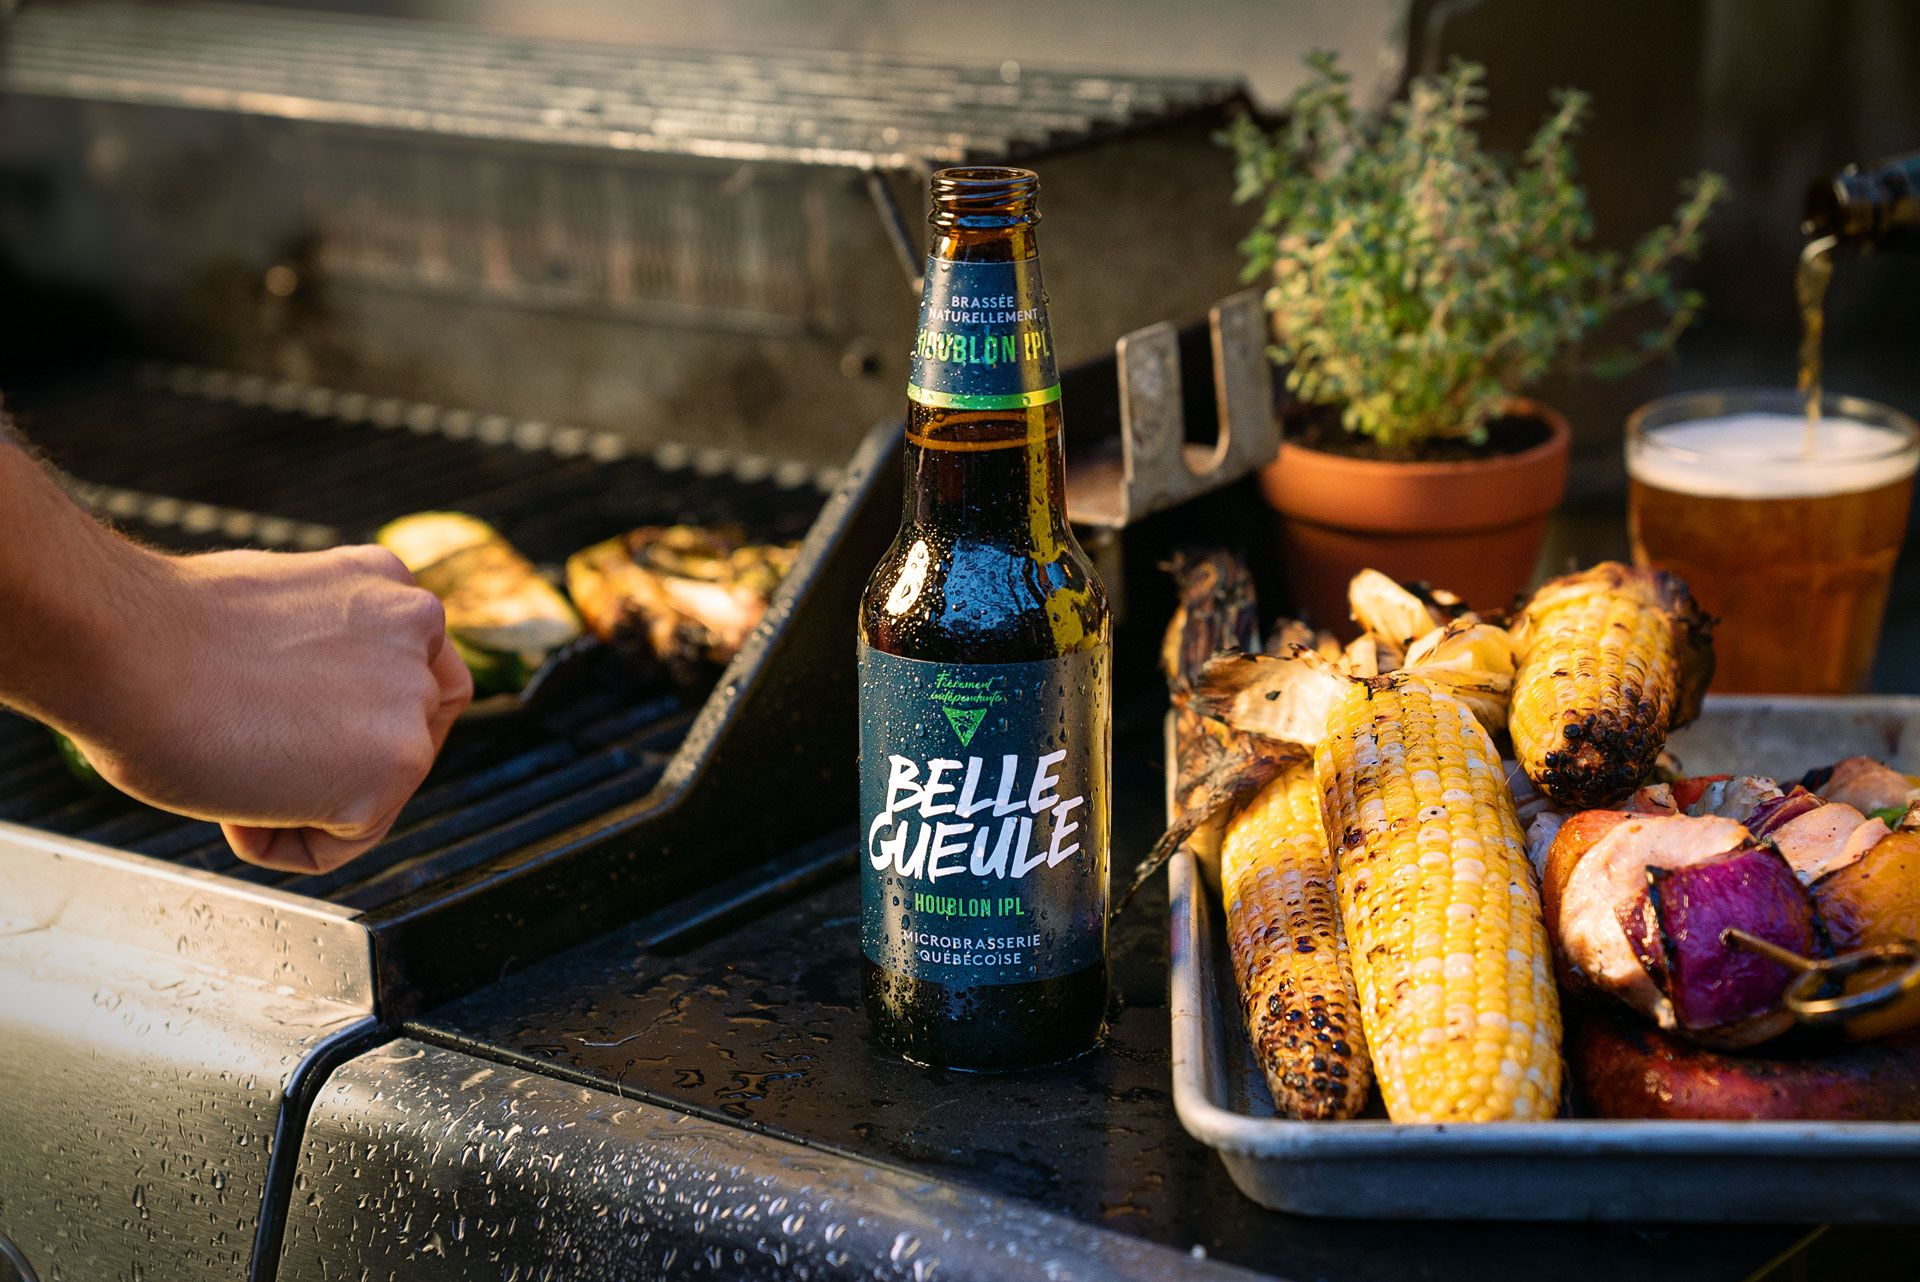 Belle Gueule's houblon IPL beer next to barbecue in the rain photographed by Bruno Florin for Belle Gueule with Forsman & Bodenfors